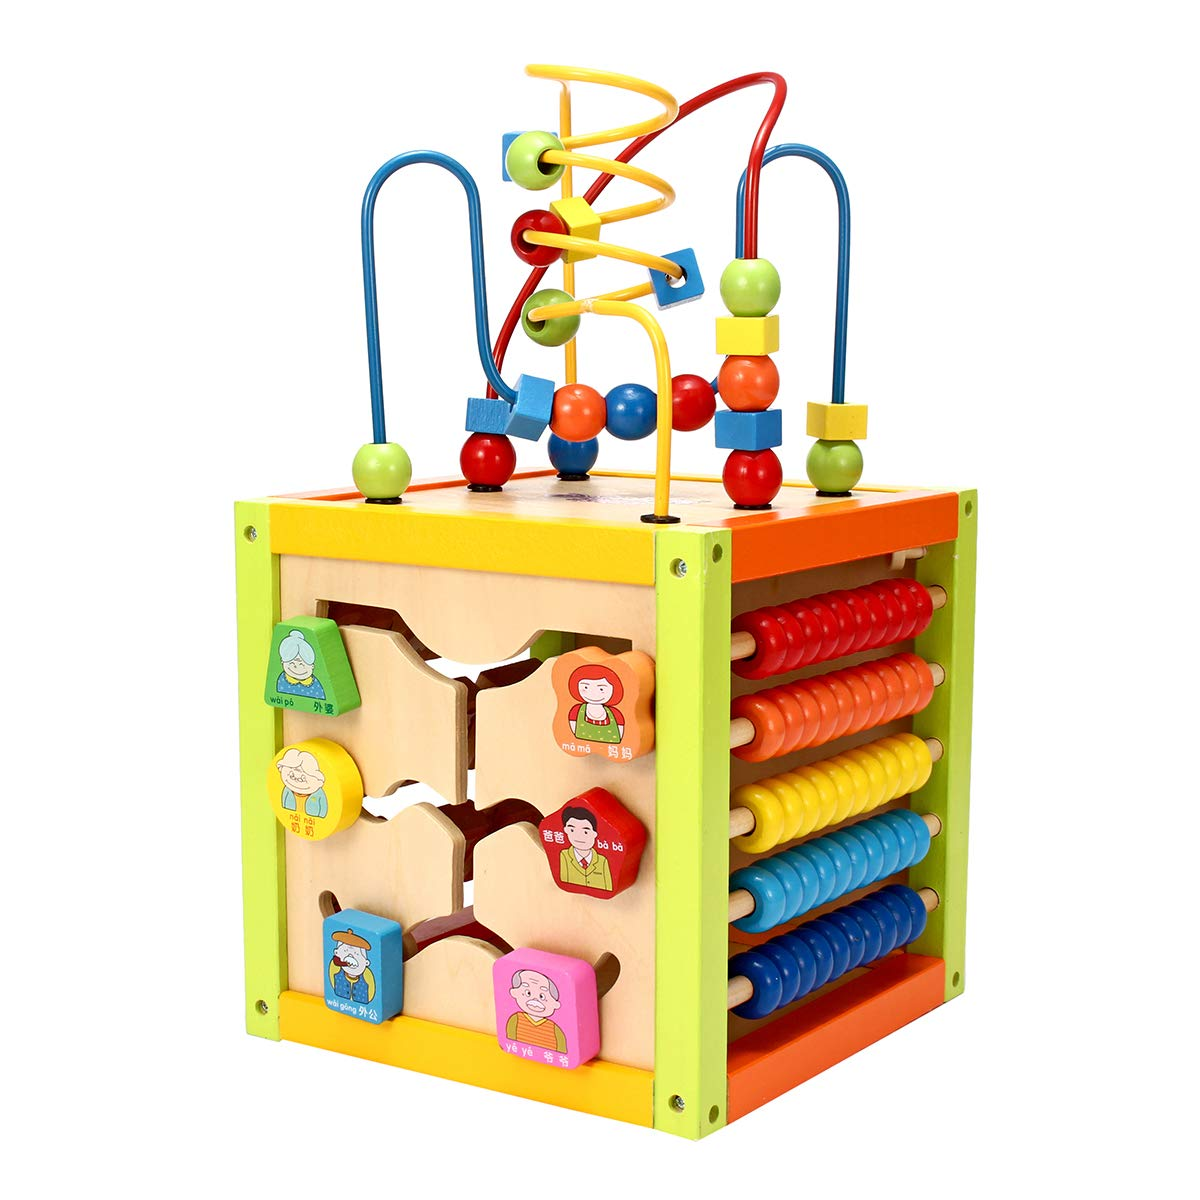 KING DO WAY Motorikwürfel Motorikschleife Kinder aus Holz Baby Activity Cube Würfel Spielzeug Schleife, Mit Farberkennung, Cartoon-Identifikation, Uhr Lernen, Mathematik Lernen, Etc